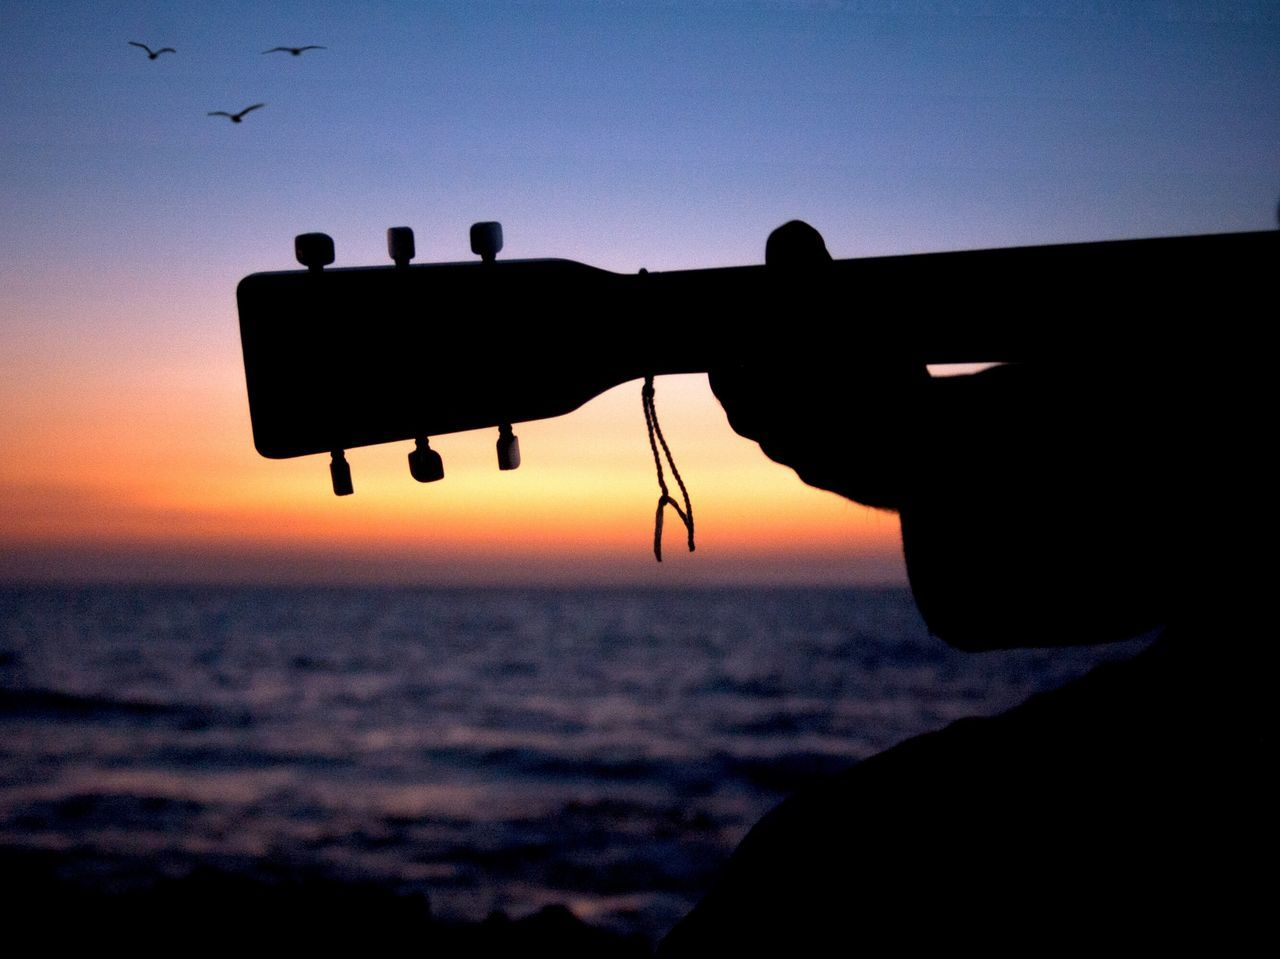 Sunset jam Sunset Silhouette Sky Outdoors Beach One Person Sea Beauty In Nature Ocean Silouette & Sky Birds Flying Clouds And Sky Guitarist Birds In Flight Silhouettes Birds Silhouette Birds Silhoutte Photography Silhouette_collection Ocean View Guitar Guitars Beauty In Nature Bird Music